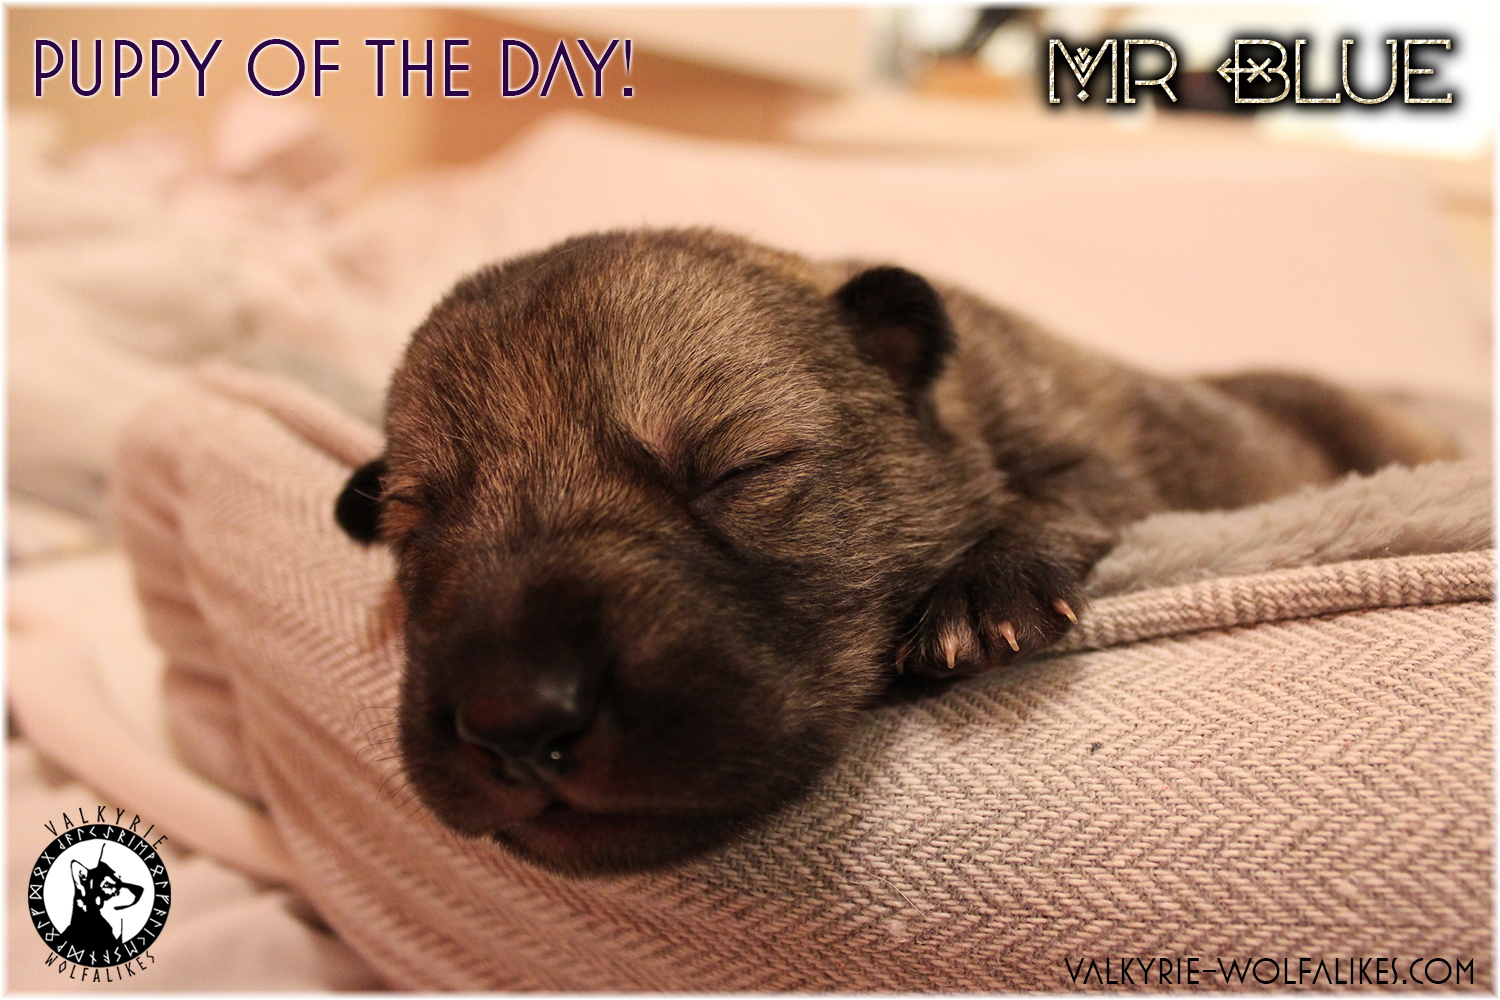 Pup of the Day 11 April